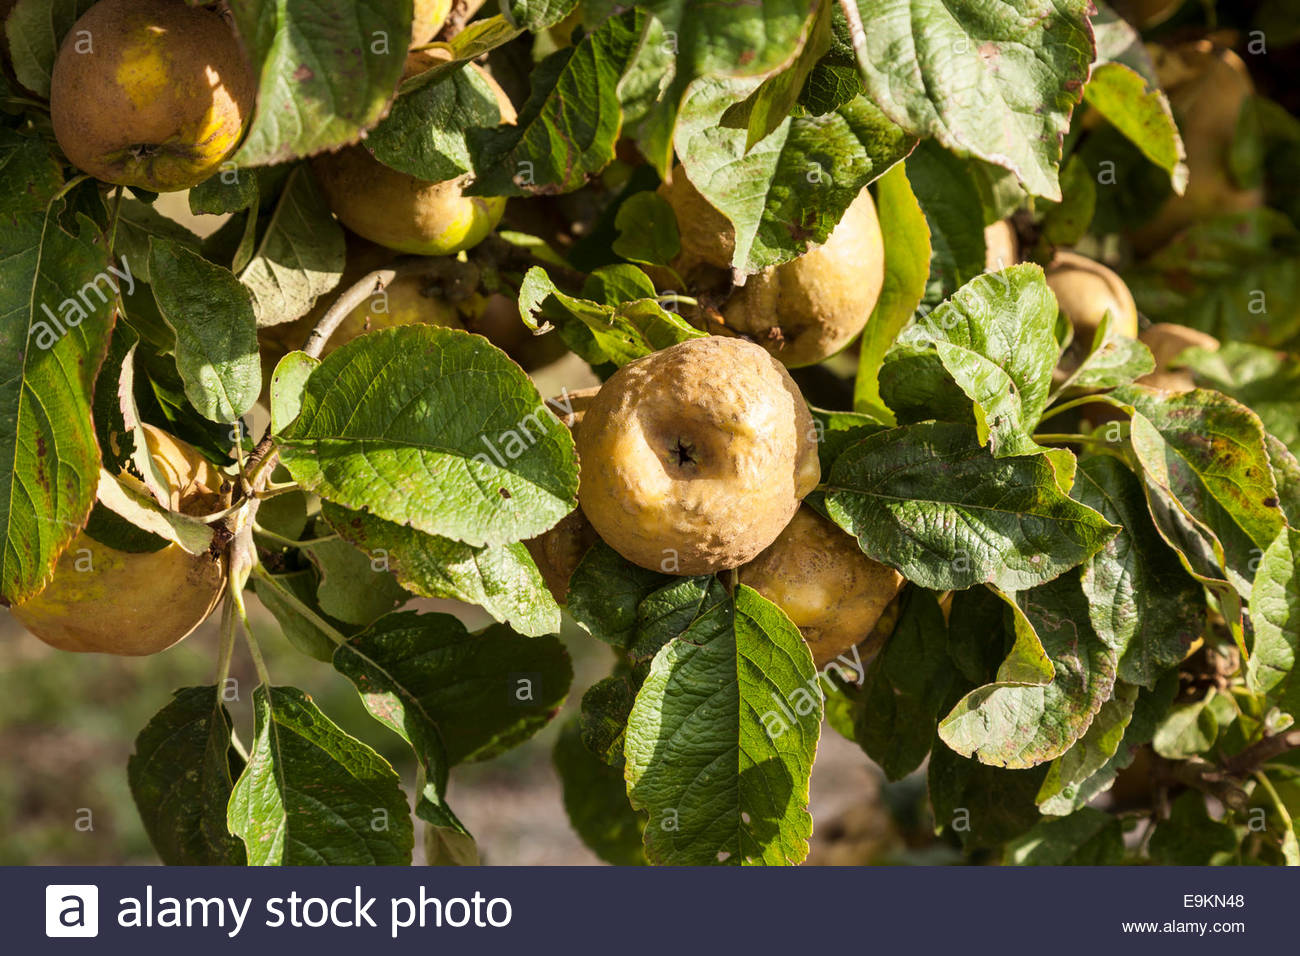 Apple Tree - Variety Knobbed Russet - Stock Image